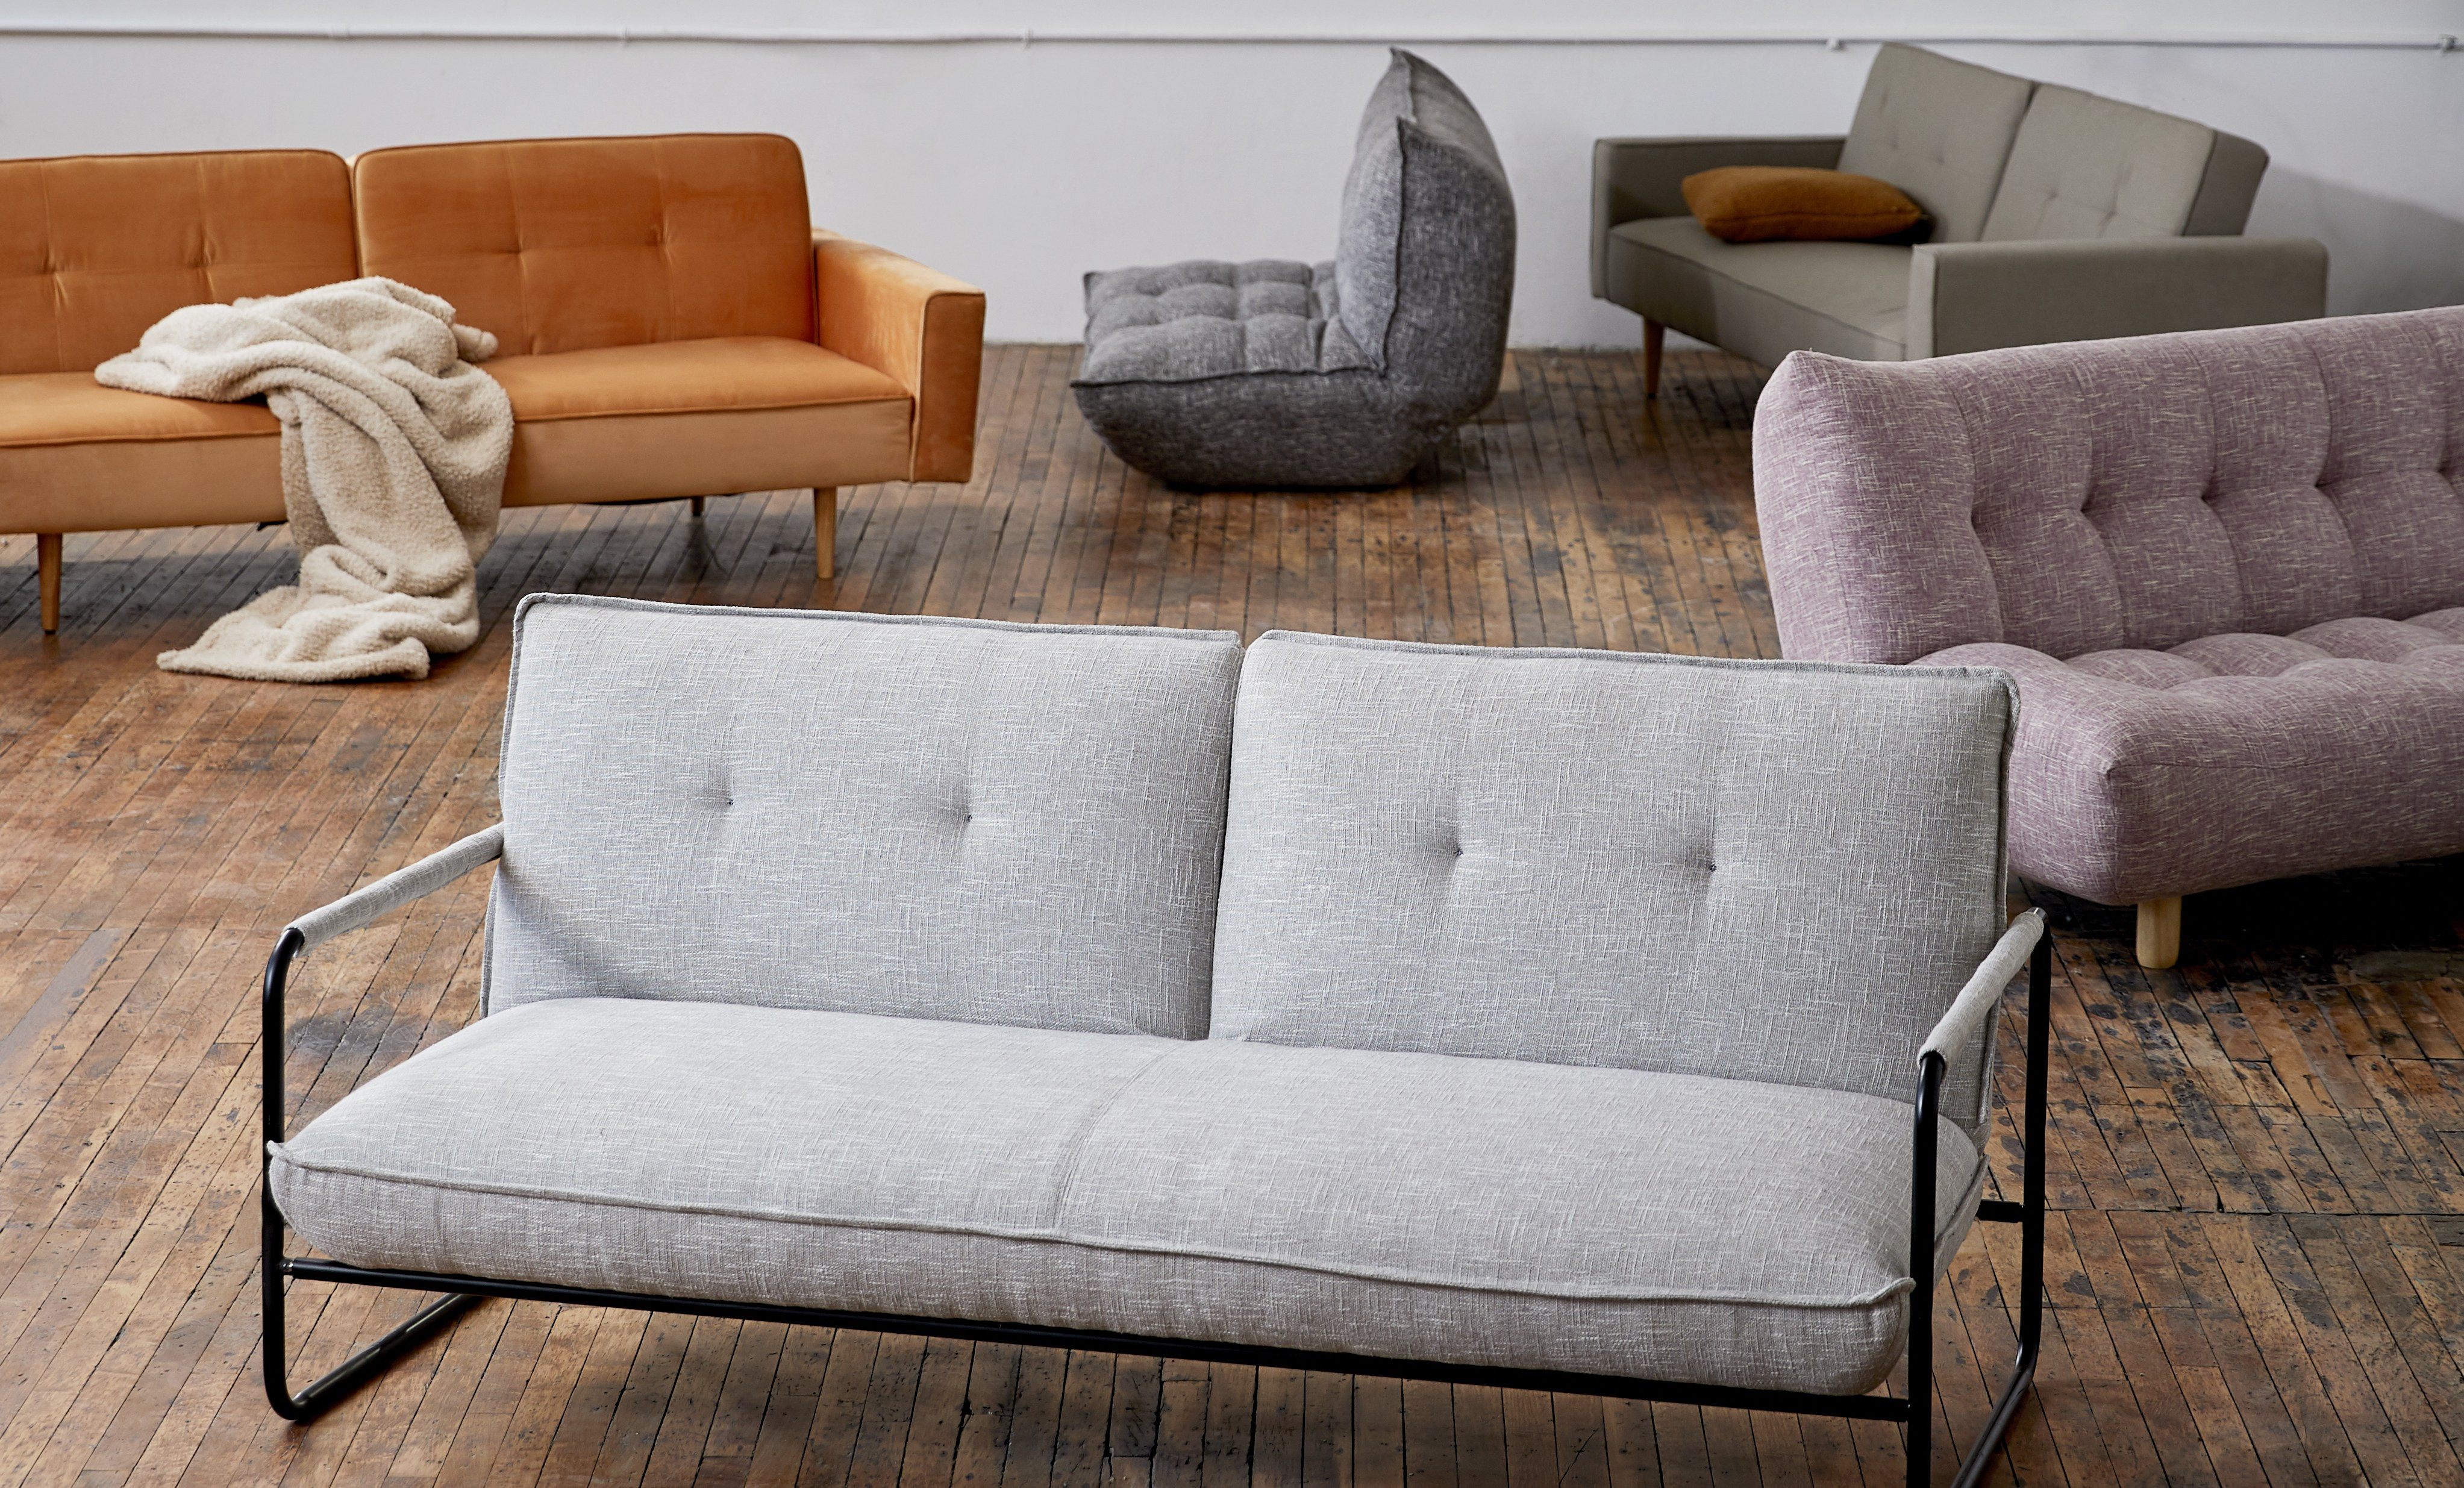 Best ideas about Urban Outfitters Sofa . Save or Pin 9 Inexpensive Couches All Under $600 from Urban Now.